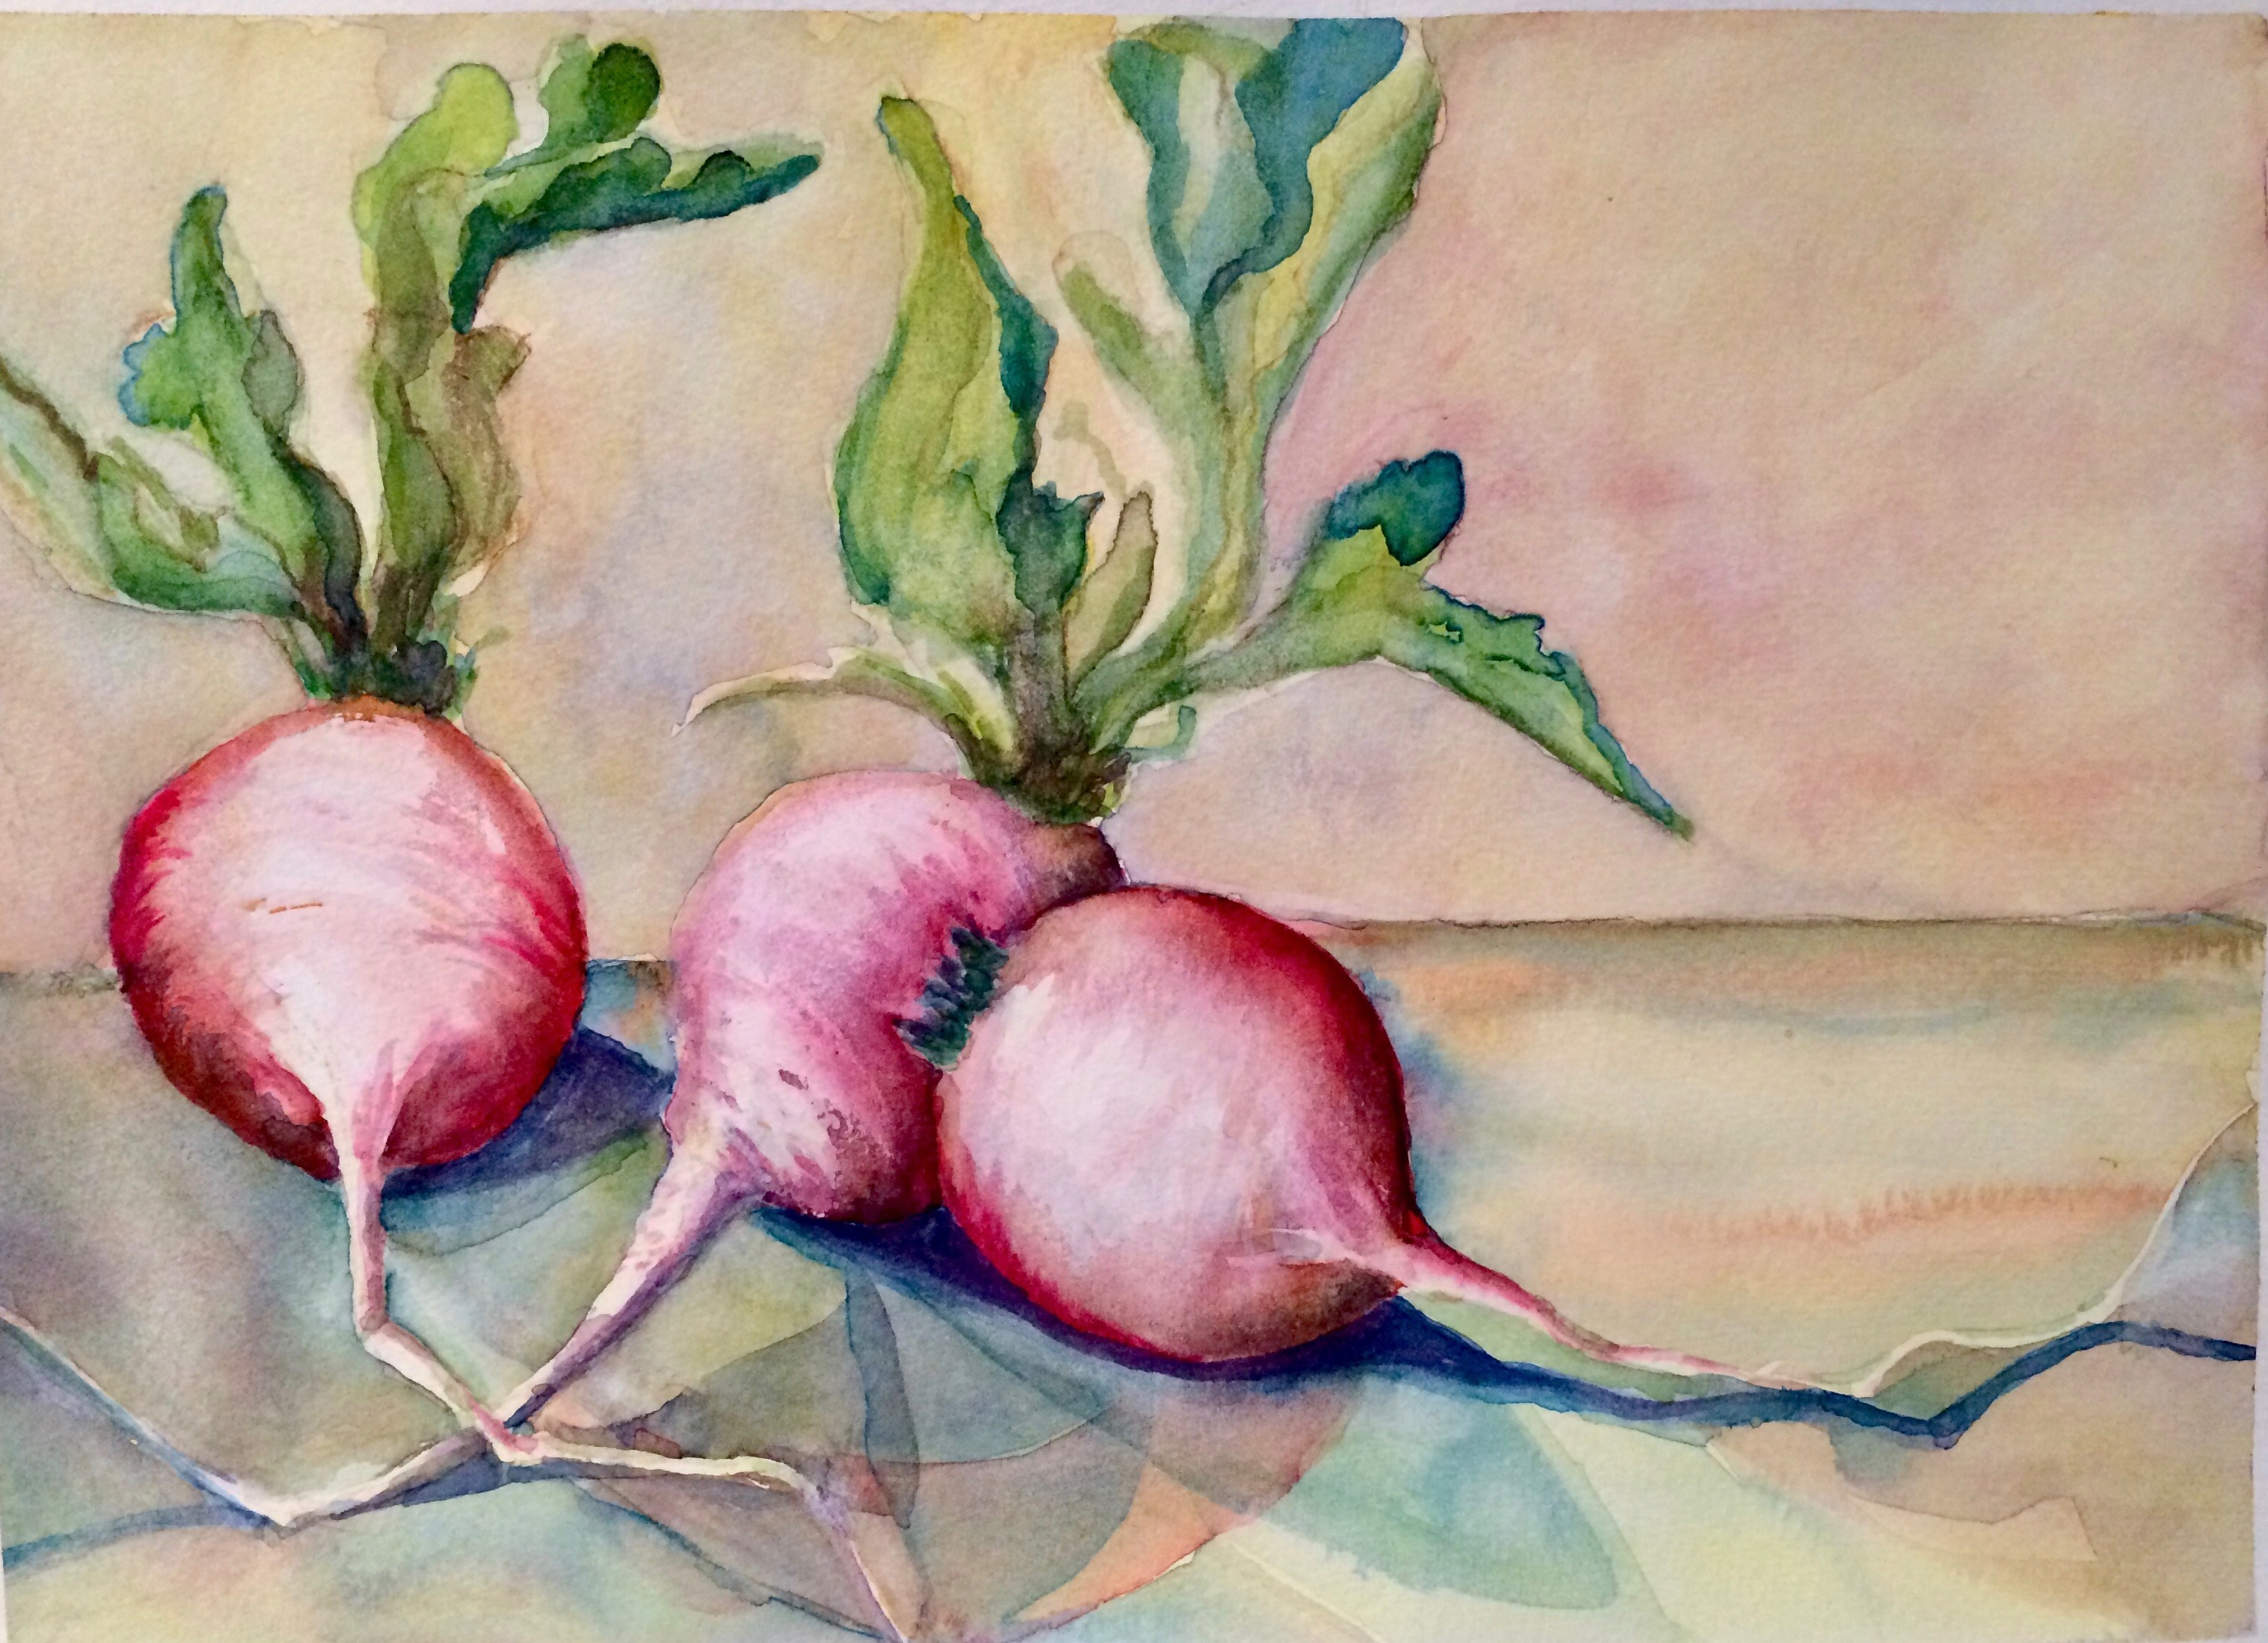 Radishes 1 copyright Peggy Willett